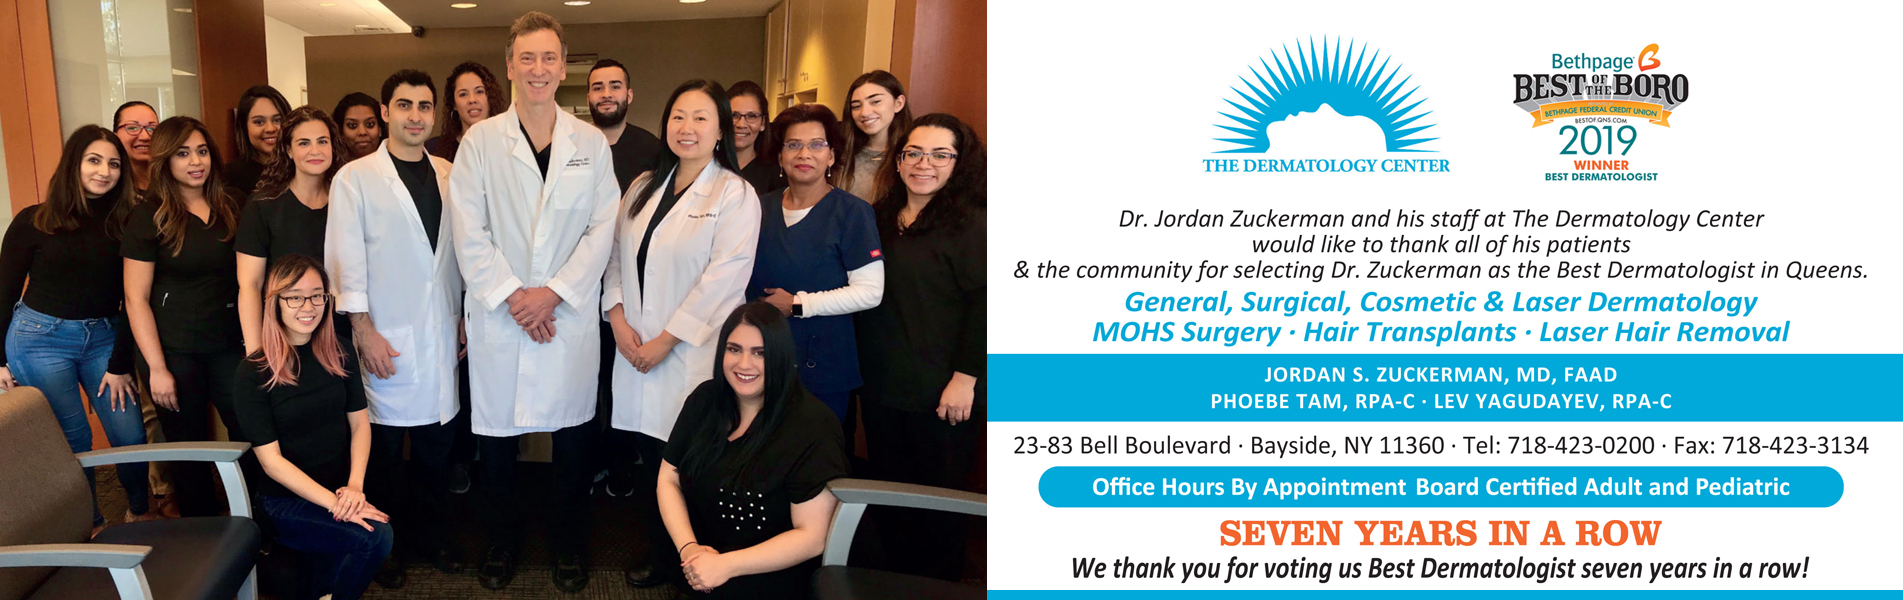 Jordan Zuckerman MD - Bayside Dermatology Center | Best Derm